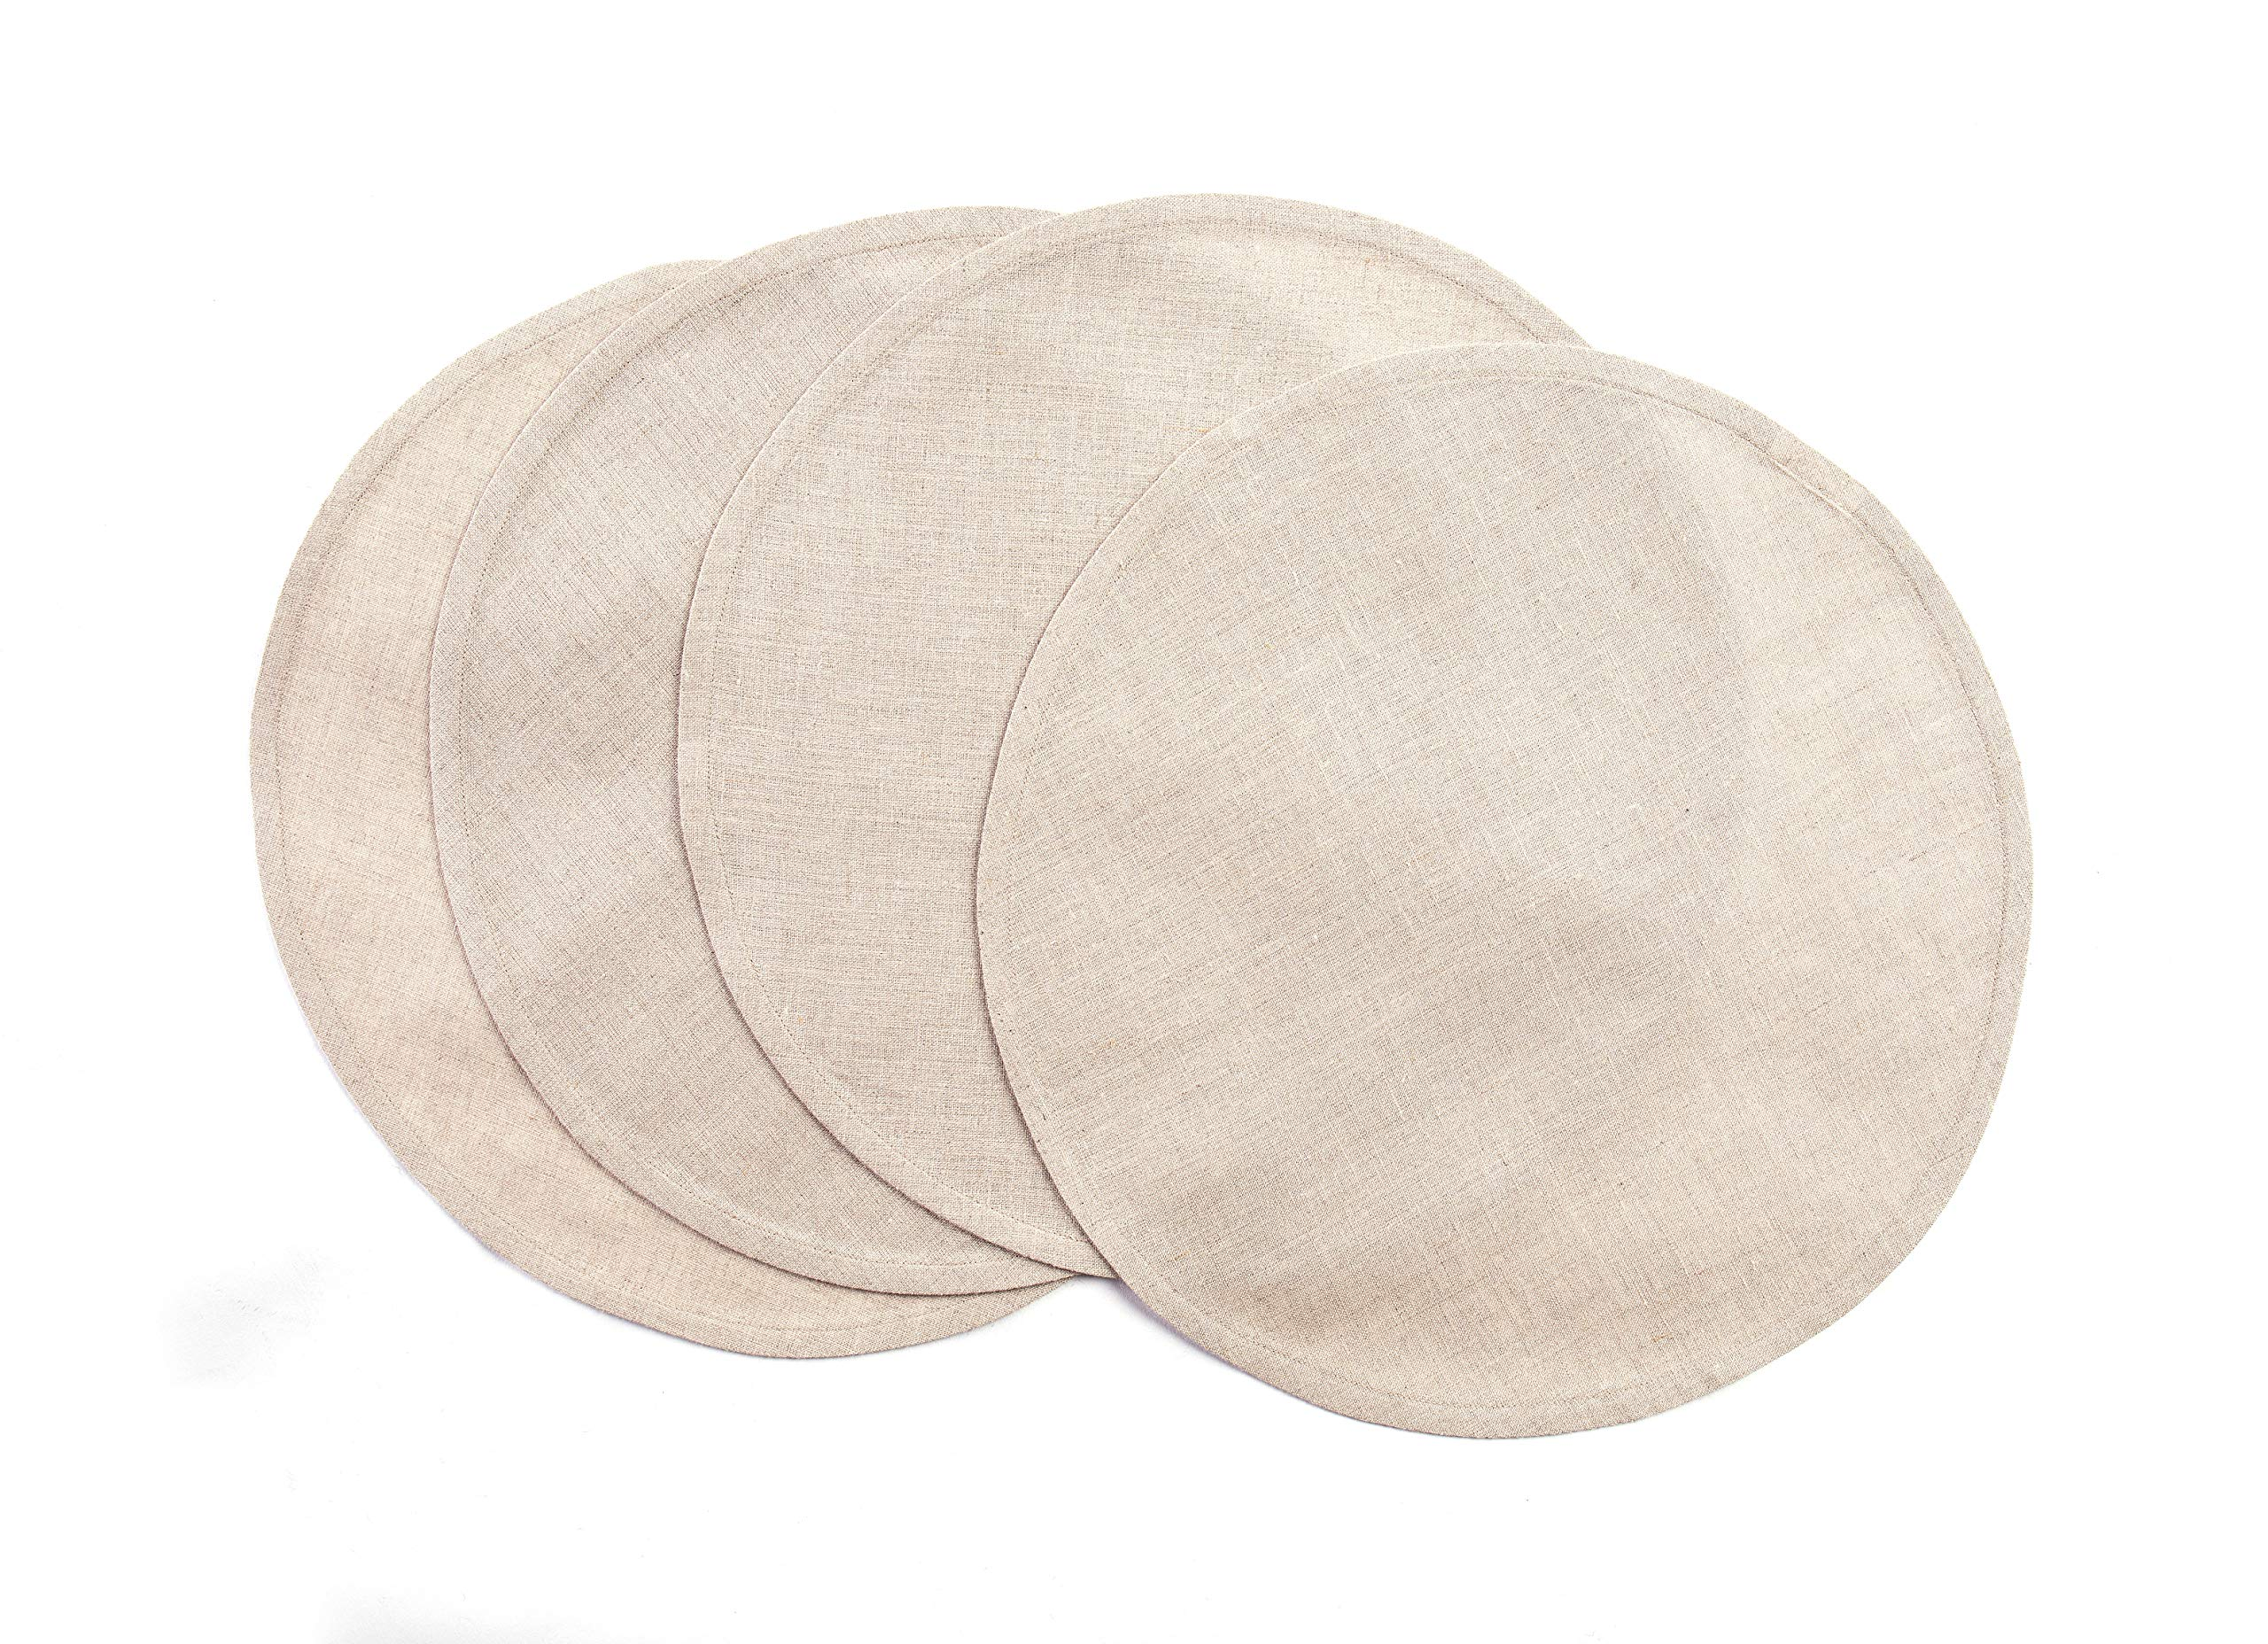 Solino Home 100% Pure Linen Round Placemats – Natural, Set of 4, 15 Inch Natural Fabric, European Flax – Handcrafted Machine Washable Indoor & Outdoor Tablemat